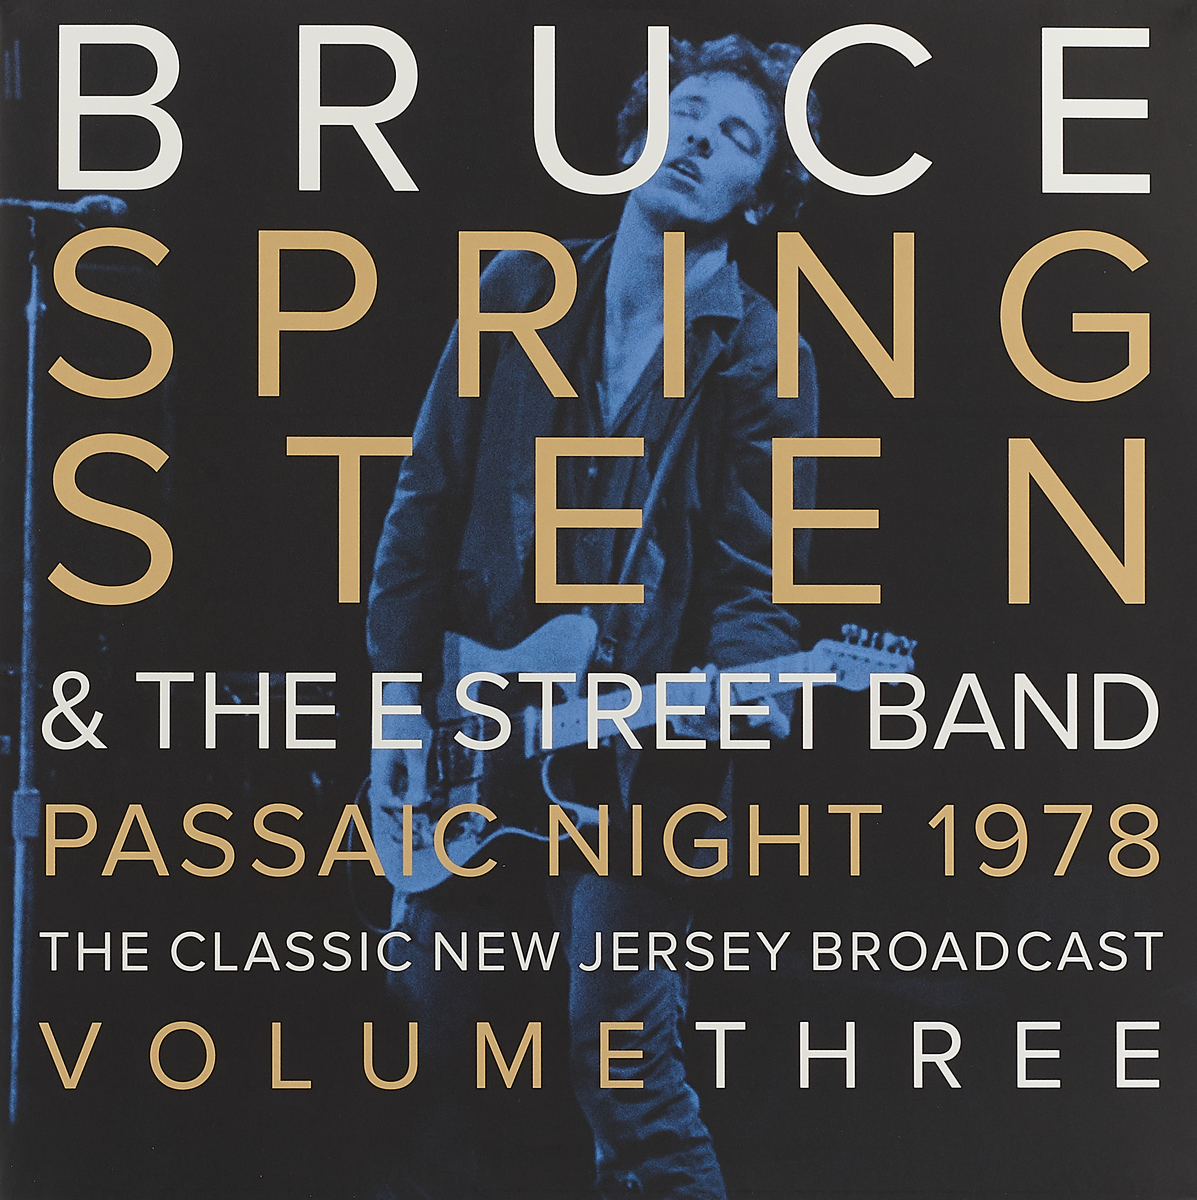 Брюс Спрингстин Bruce Springsteen. Passaic Night 1978 The Classic New Jersey Broadcast Volume Three (2 LP) цена